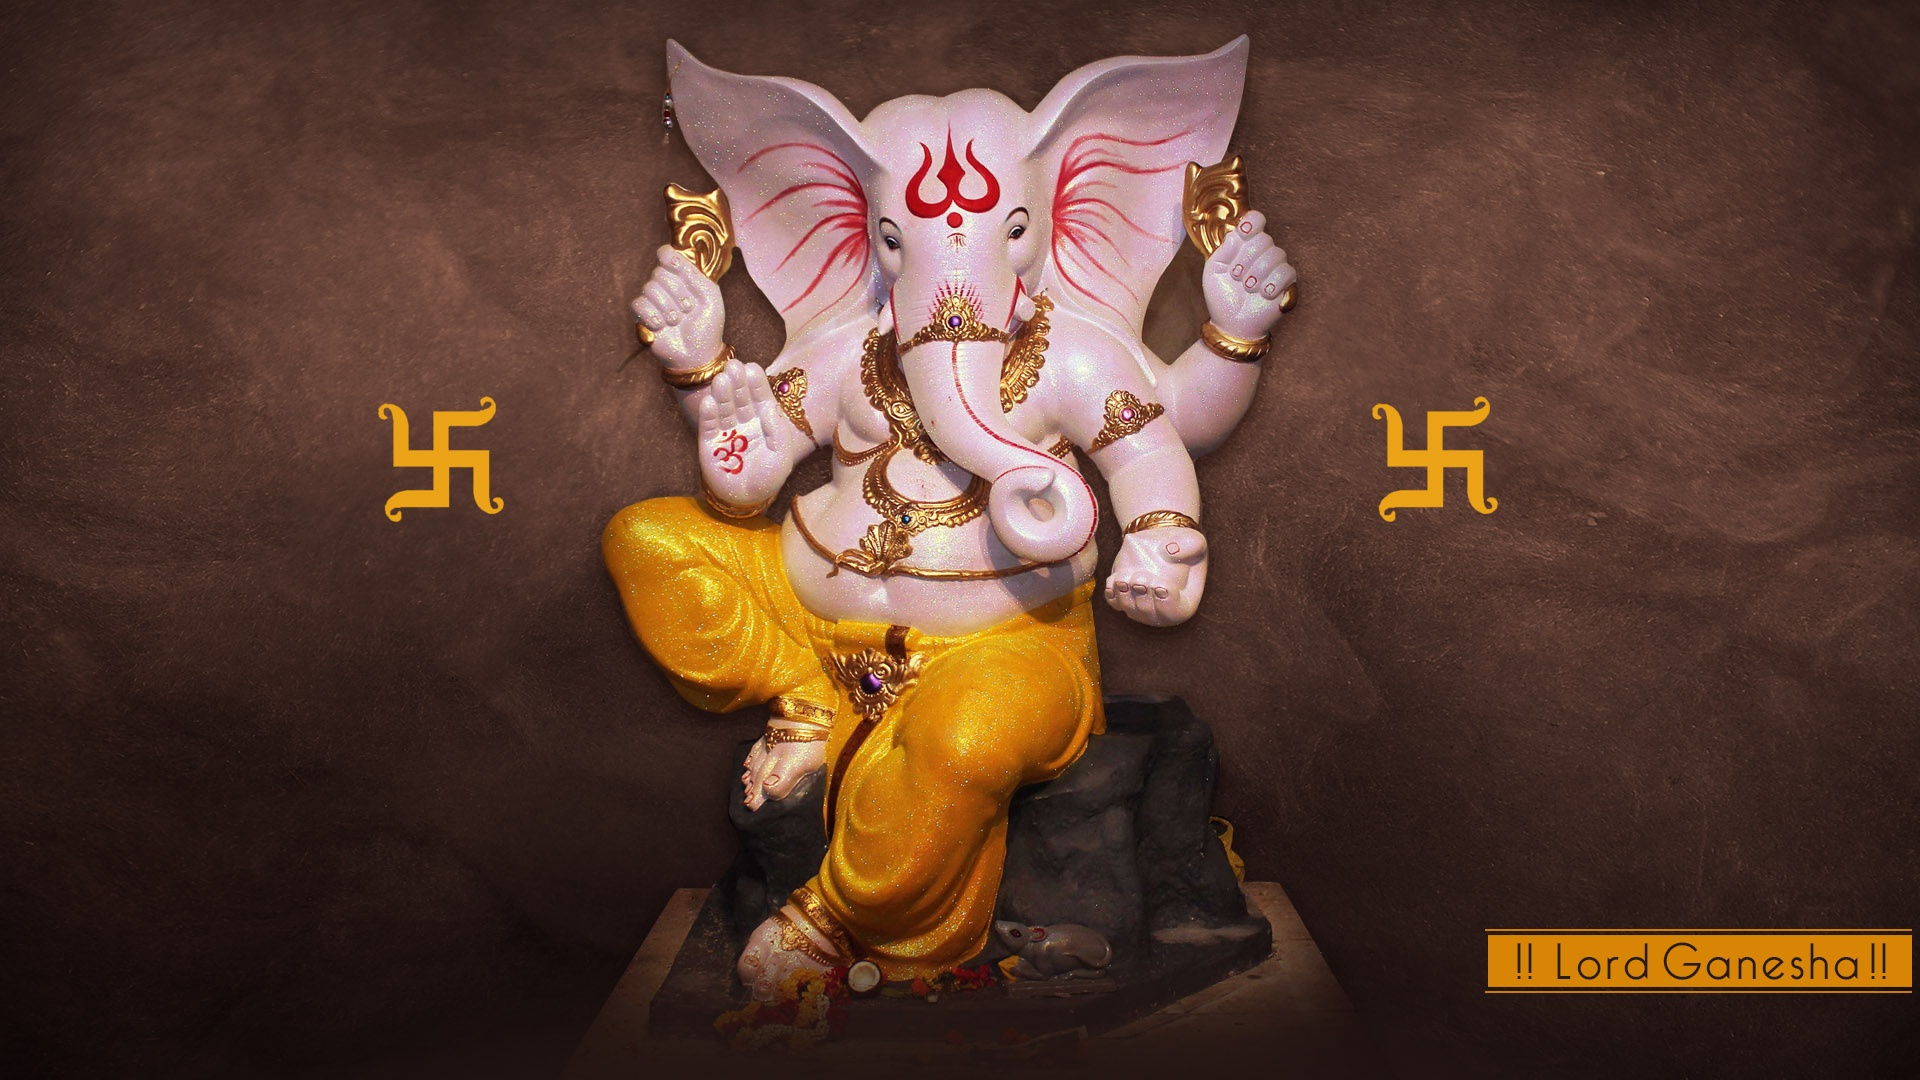 3d Ganesh Wallpapers Free Download For Pc God Ganesha Stone Statue Wallpapers 1920x1080 552345